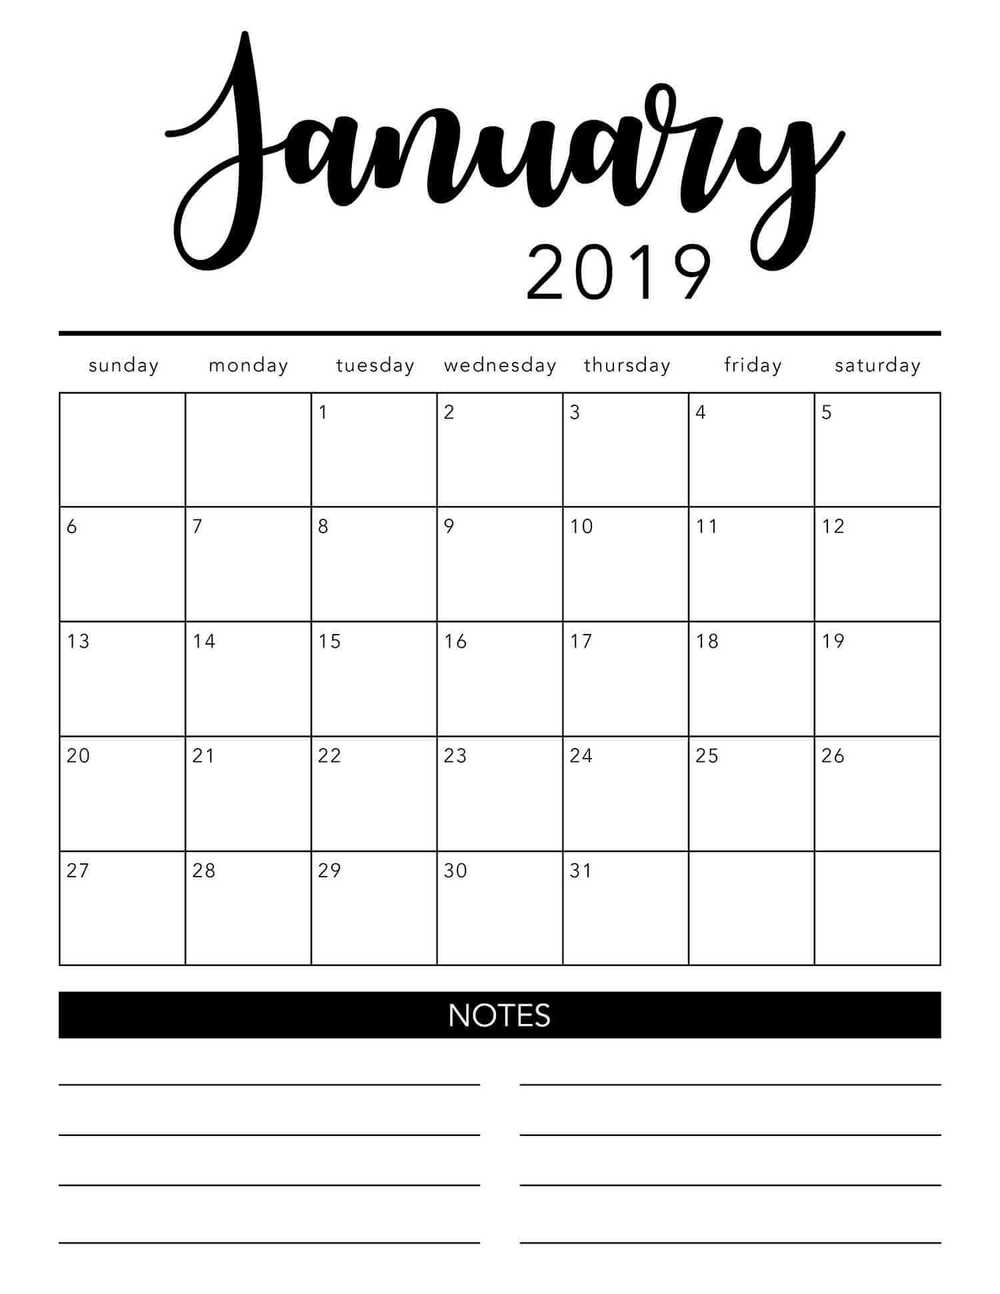 Free 2019 Printable Calendar Template (2 Colors!) - I Heart Naptime pertaining to Free Blank Printable Monthly Calendar